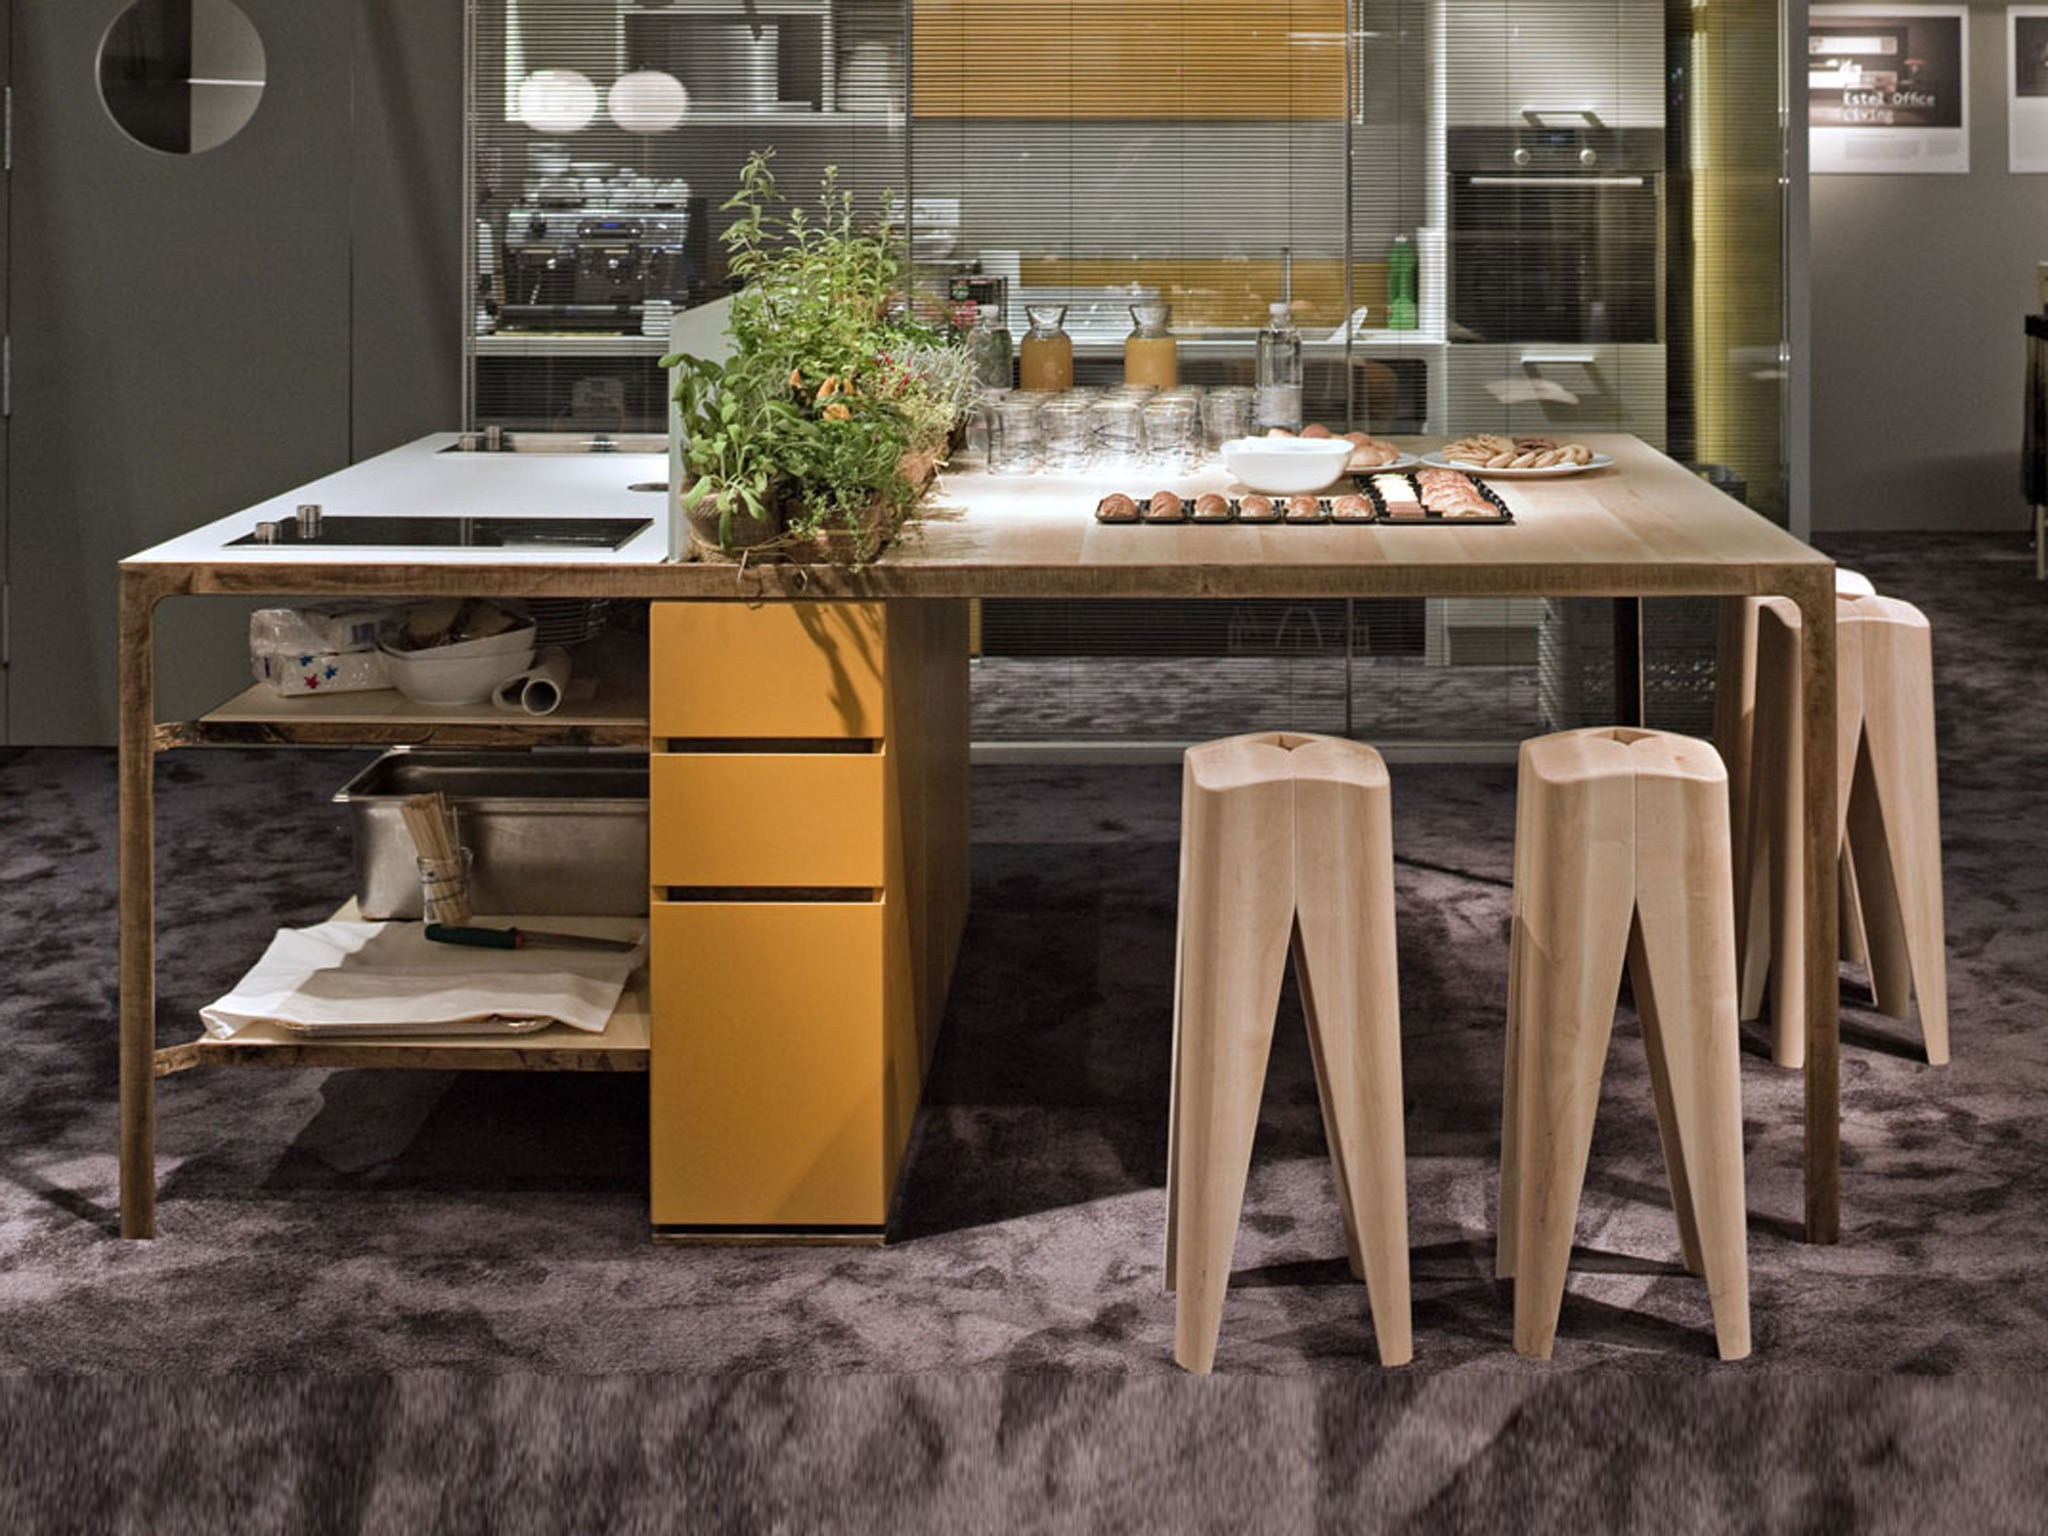 Cucina con isola MORE KITCHEN ISOLA by ESTEL GROUP